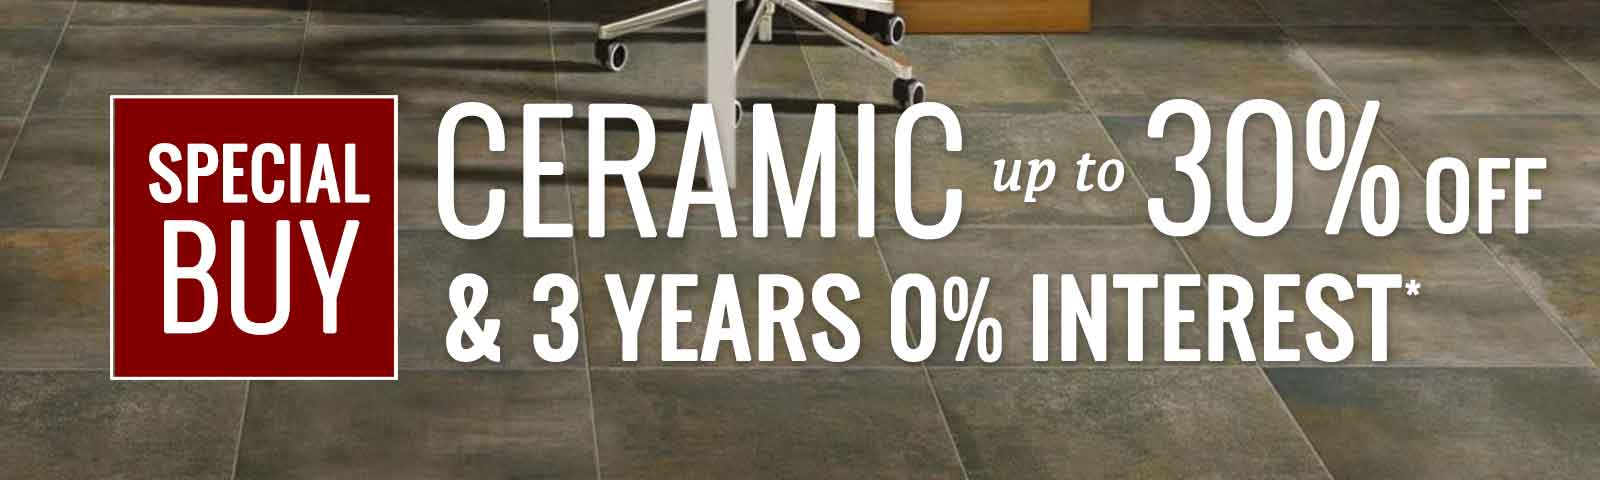 30% Savings on Ceramic Tile, Pittsburgh